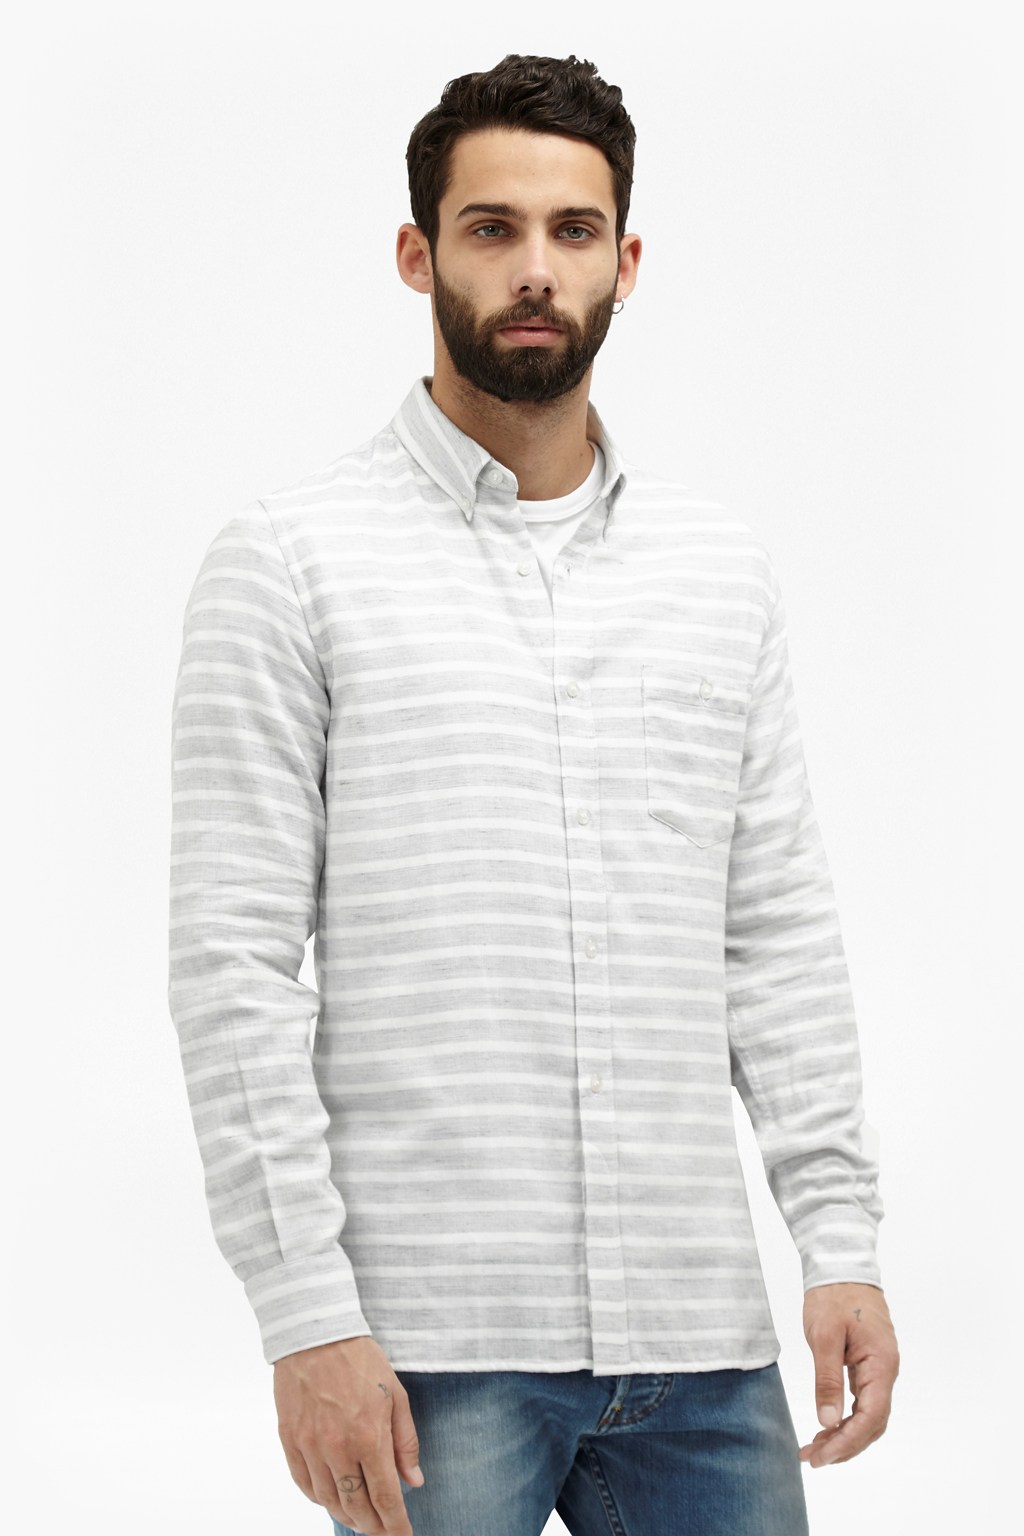 Bearcat Double Striped Shirt